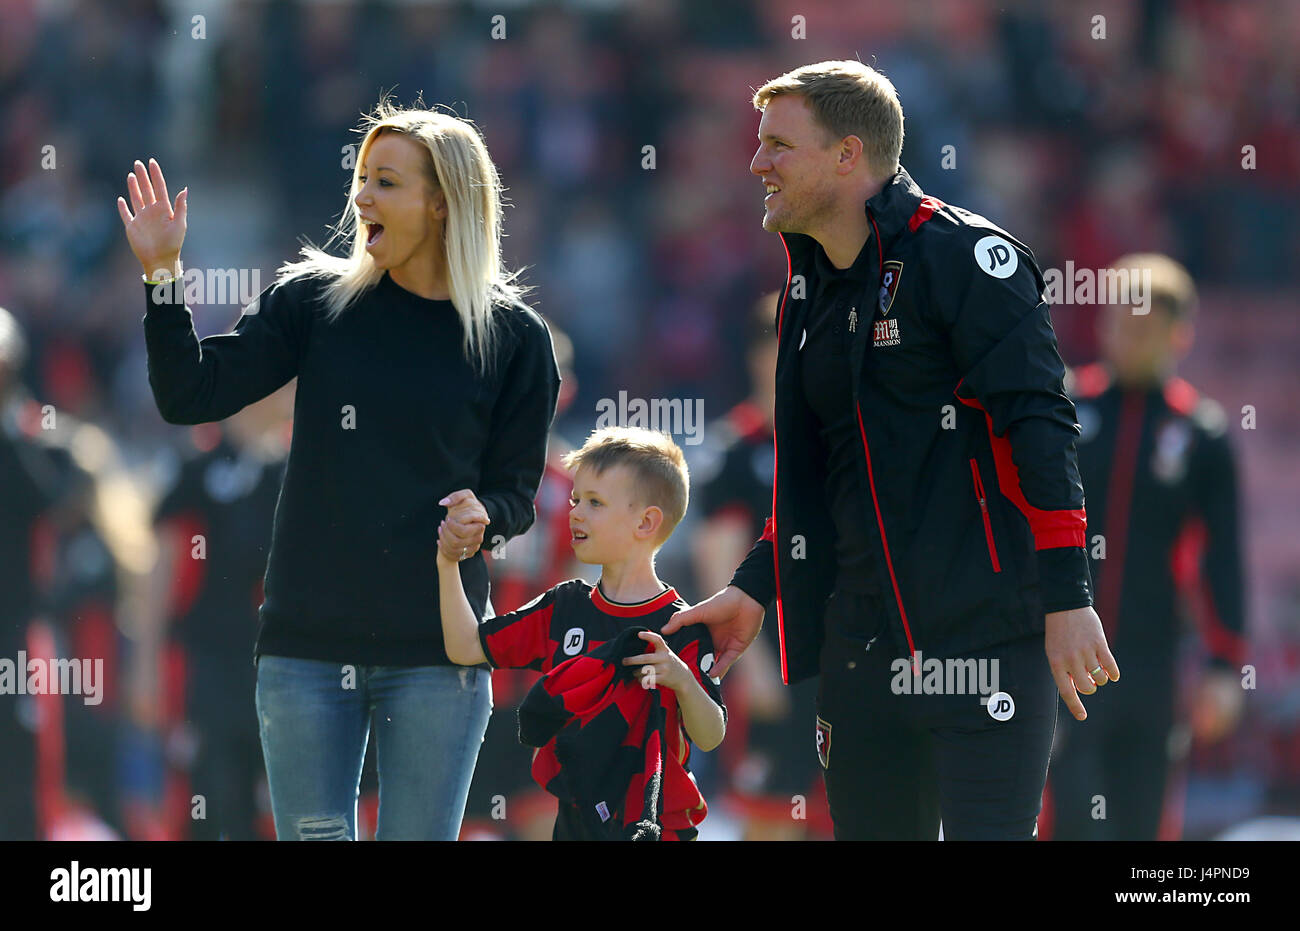 Afc Bournemouth Manager Eddie Howe Celebrates On The Pitch With Wife Stock Photo Alamy